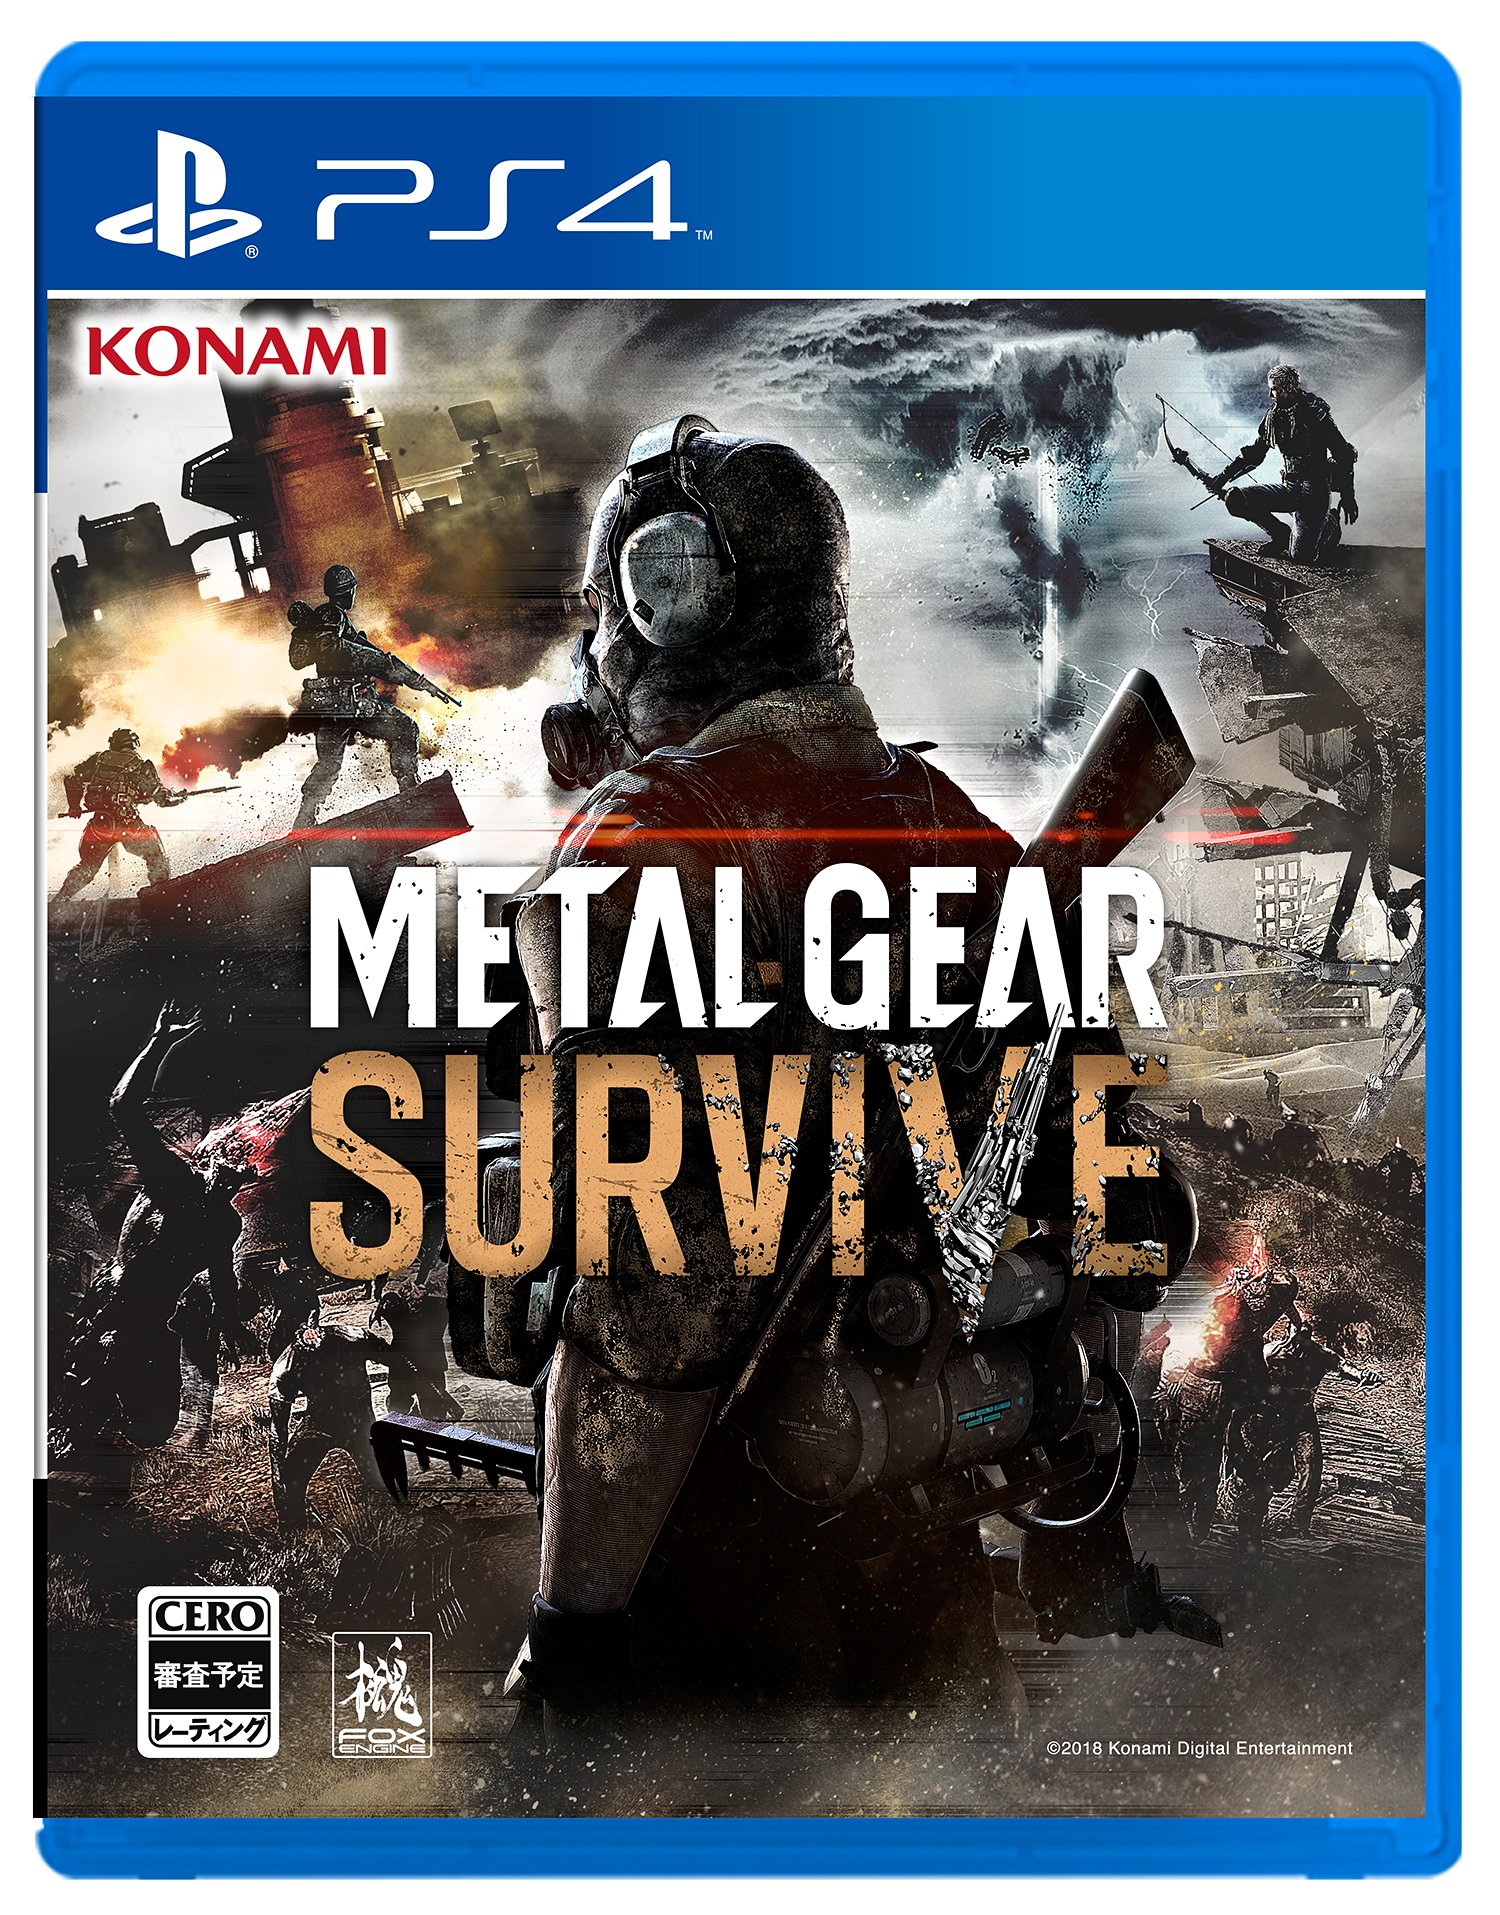 6souls games dont know forever easter this genius pure insanity co-op zombie 4-player pcps4xb1 gear survive stabber back going 2018 metal